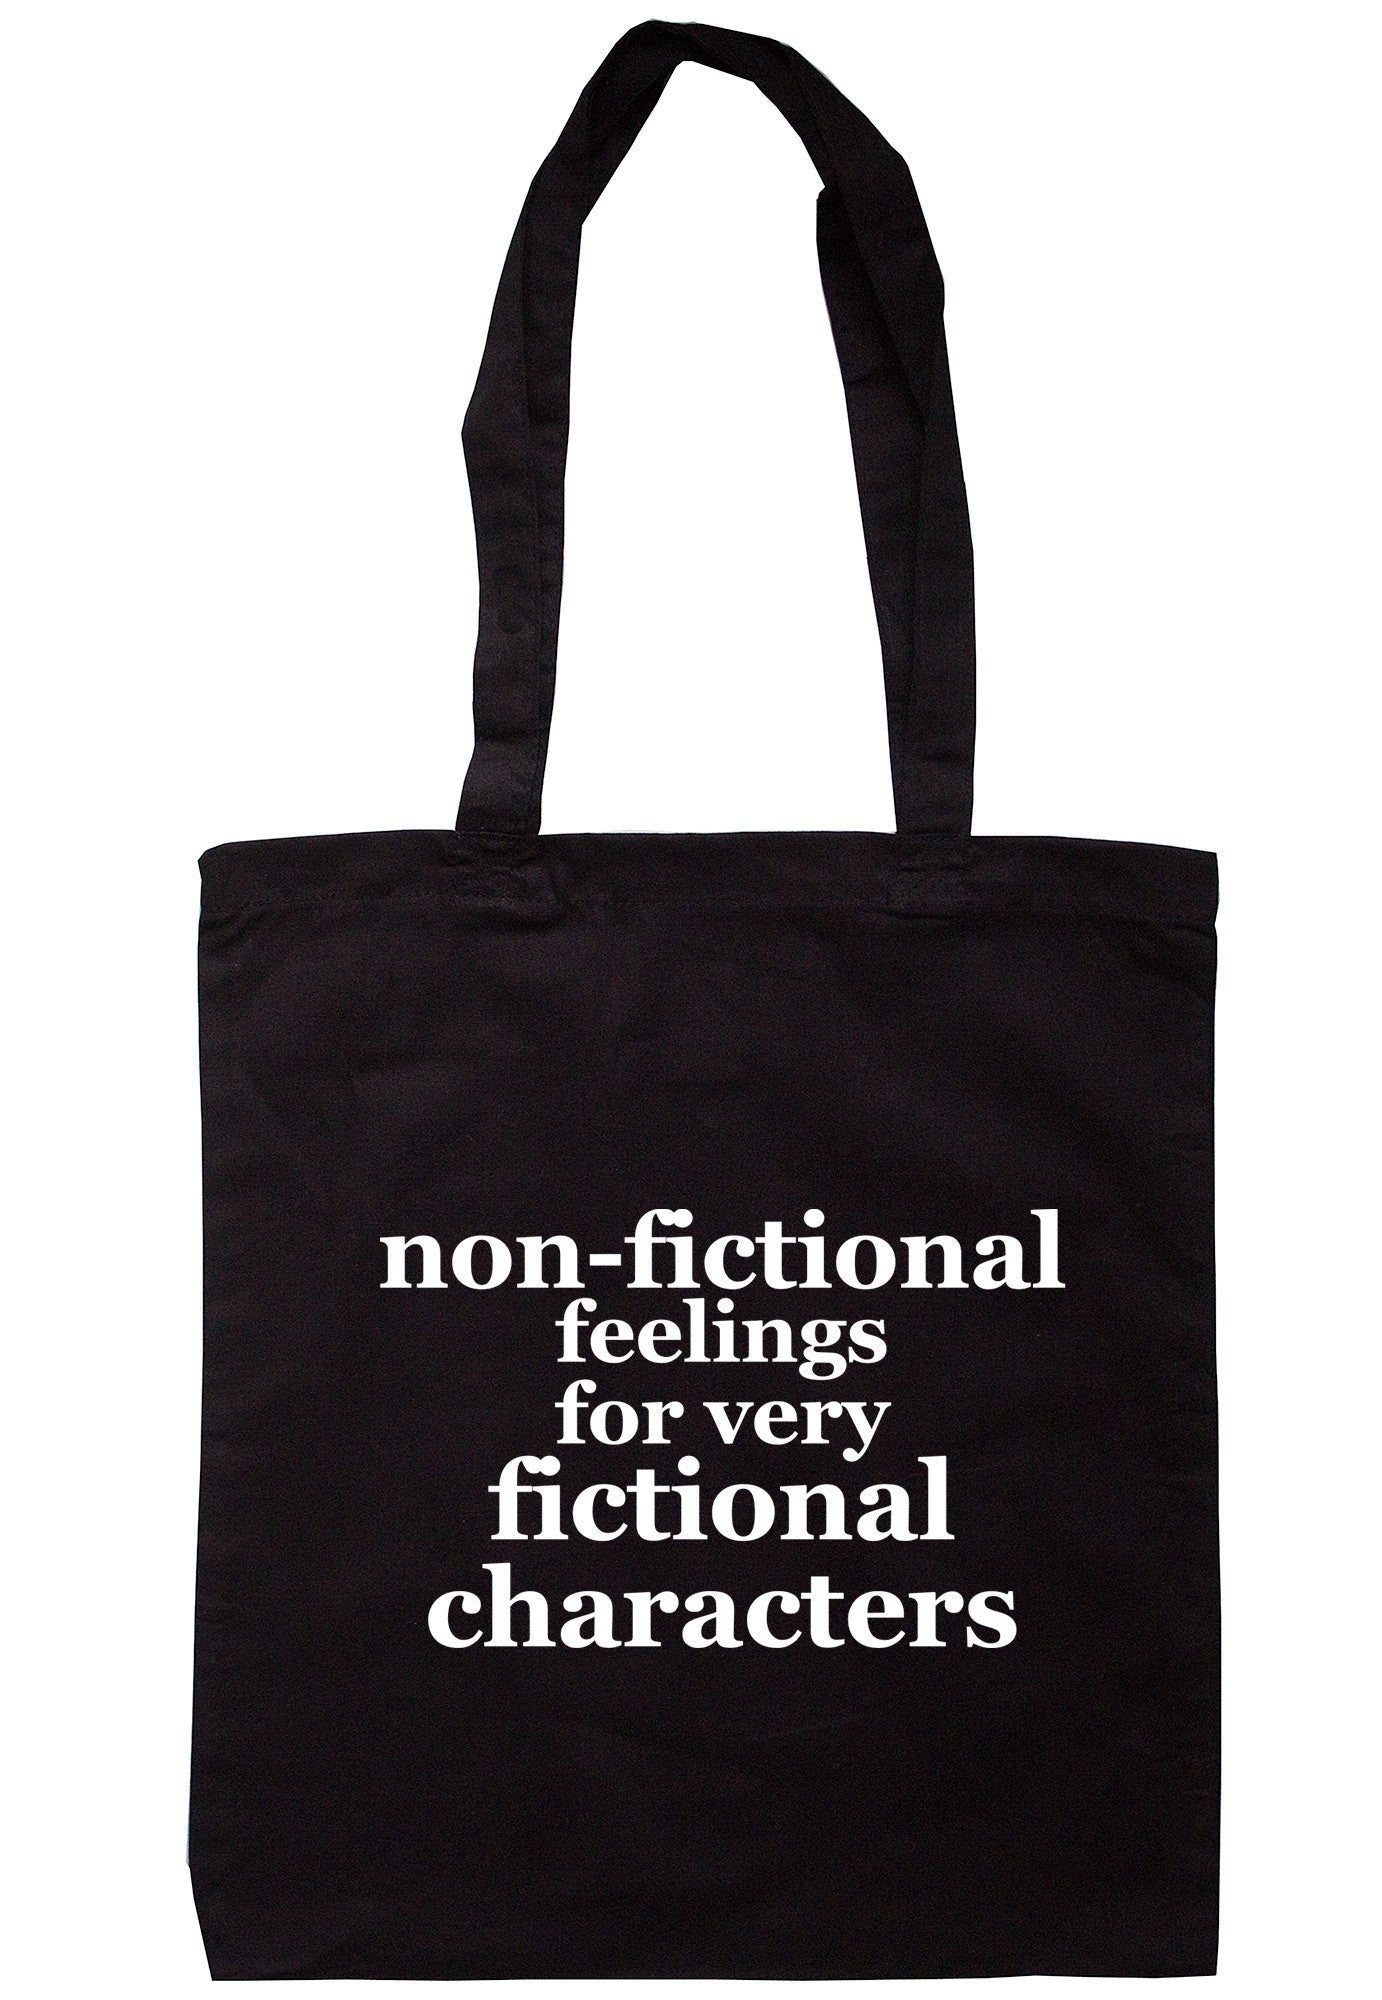 Non-Fictional Feelings For Very Fictional Characters Tote Bag TB0493 - Illustrated Identity Ltd.